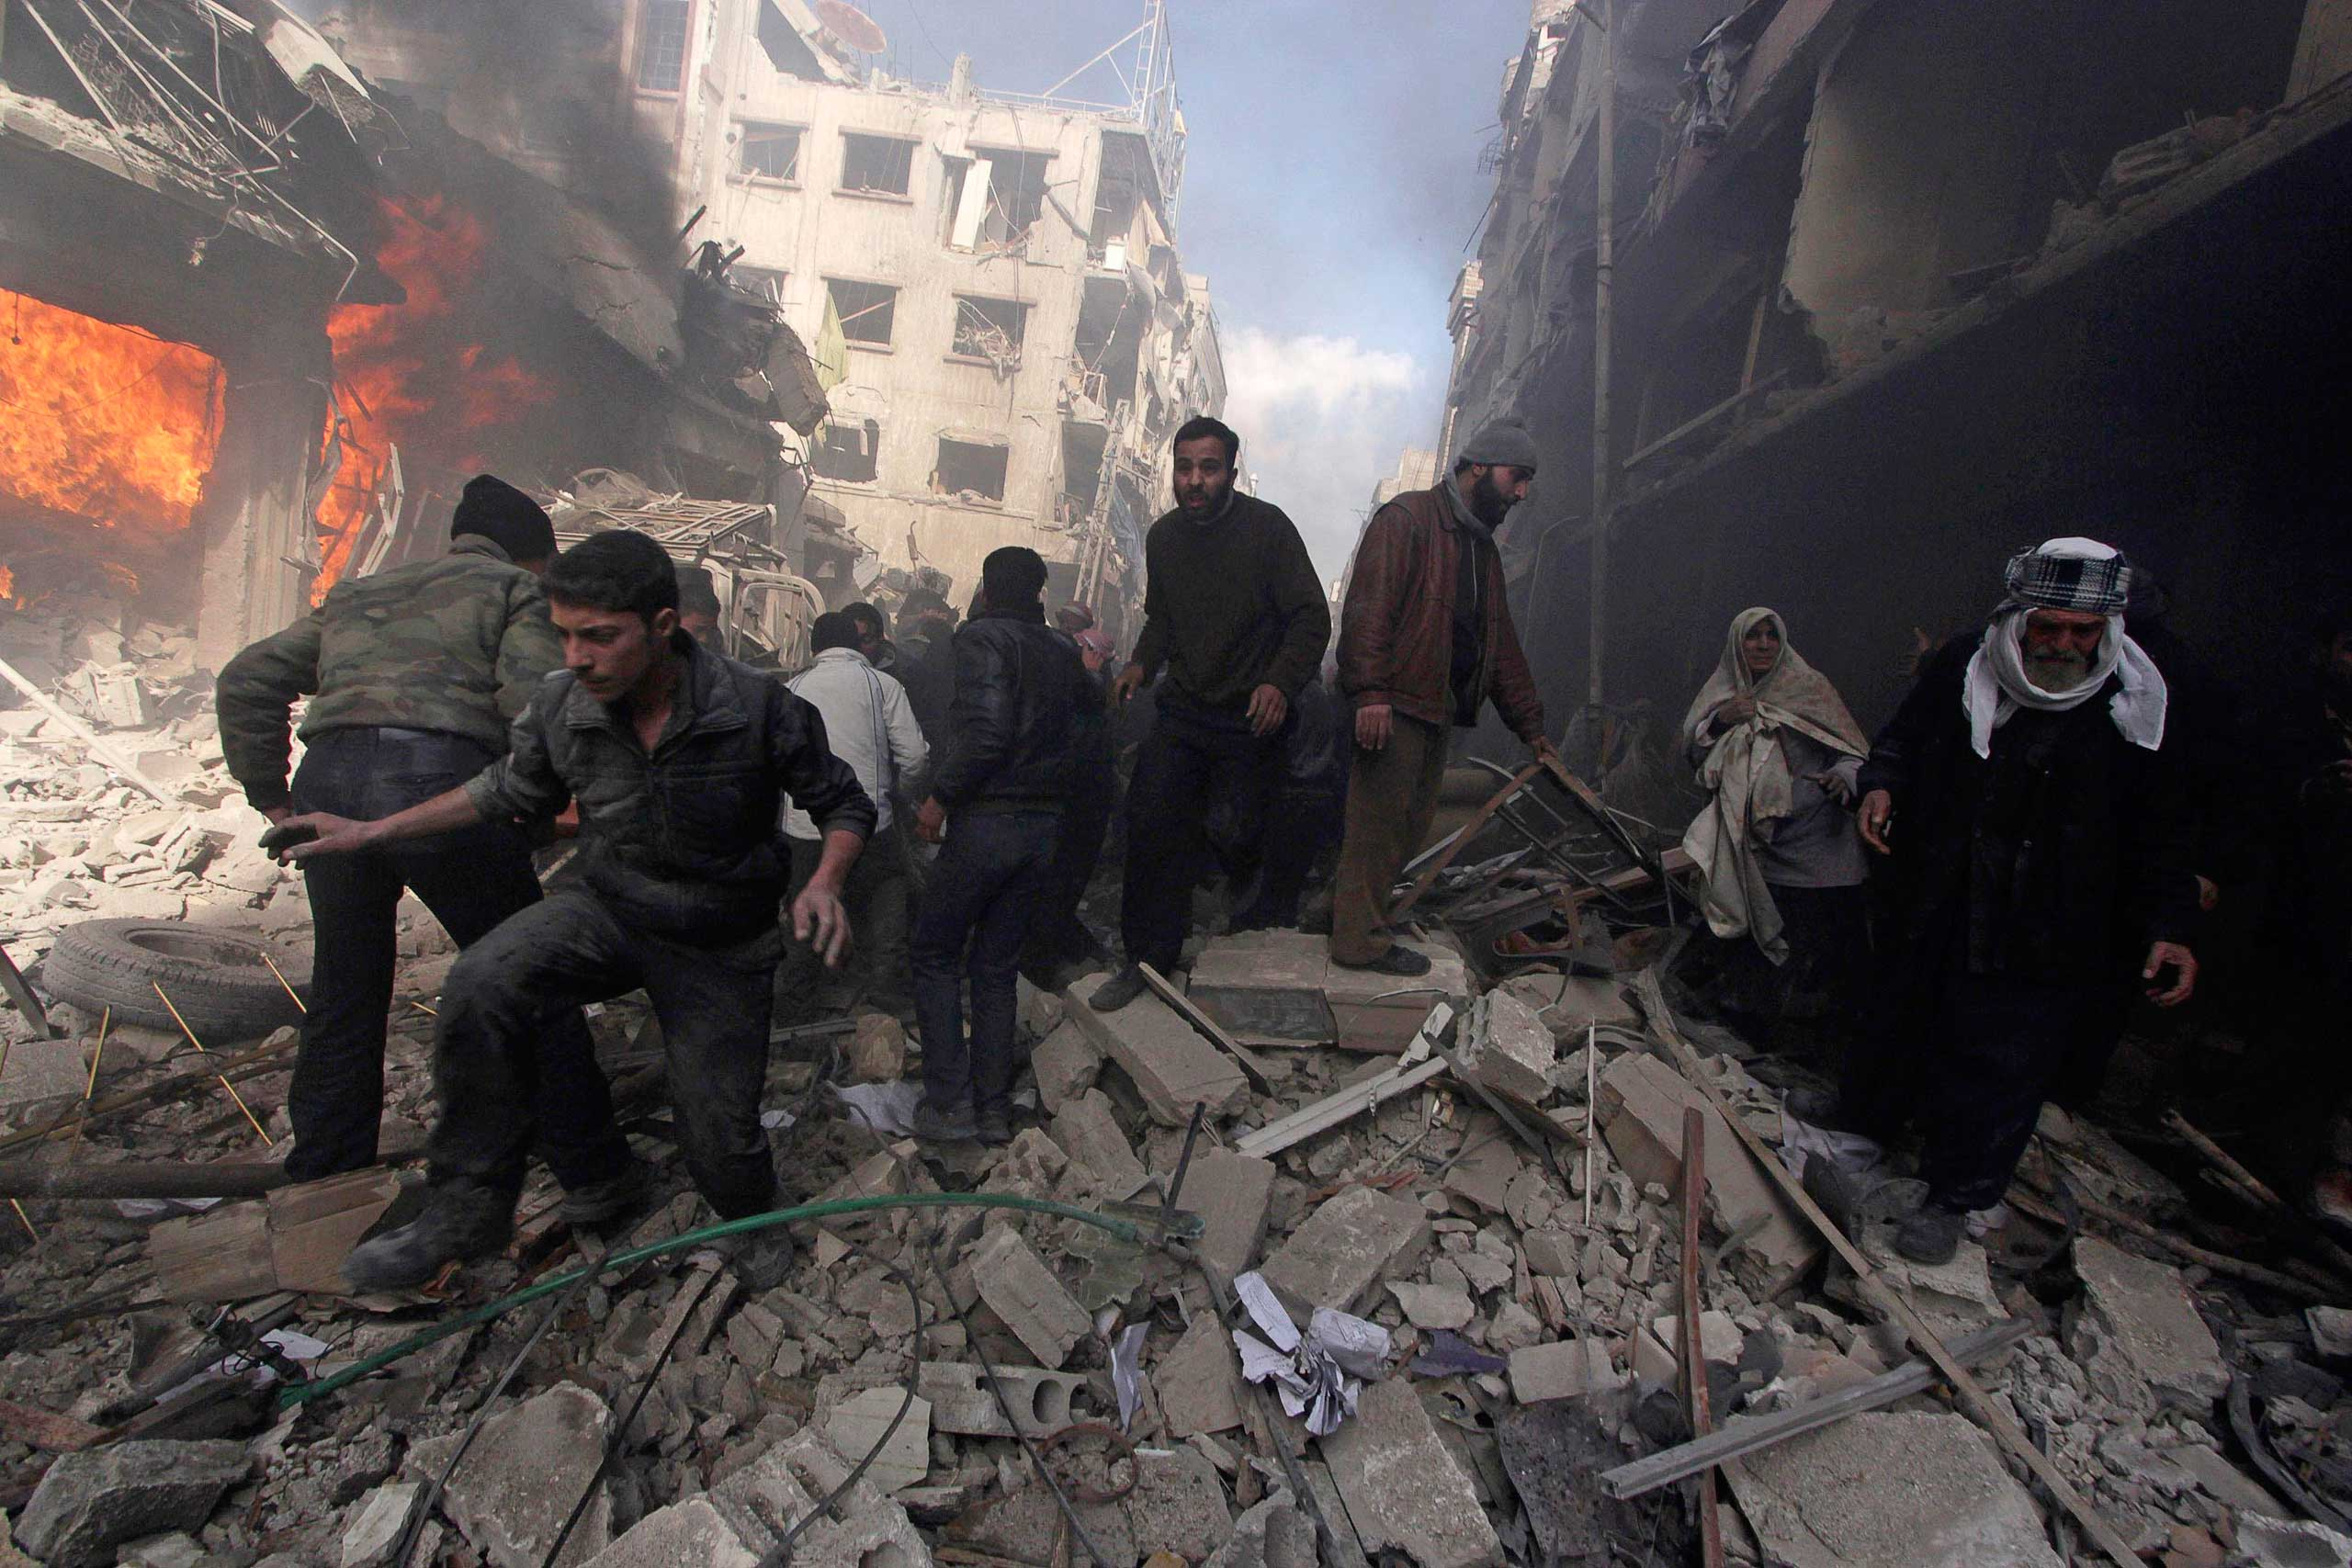 People walk on rubble as others try to put out a fire after what activists said were airstrikes followed by shelling by forces loyal to Syria's President Bashar Assad in the Douma neighborhood of Damascus, Feb. 9, 2015.